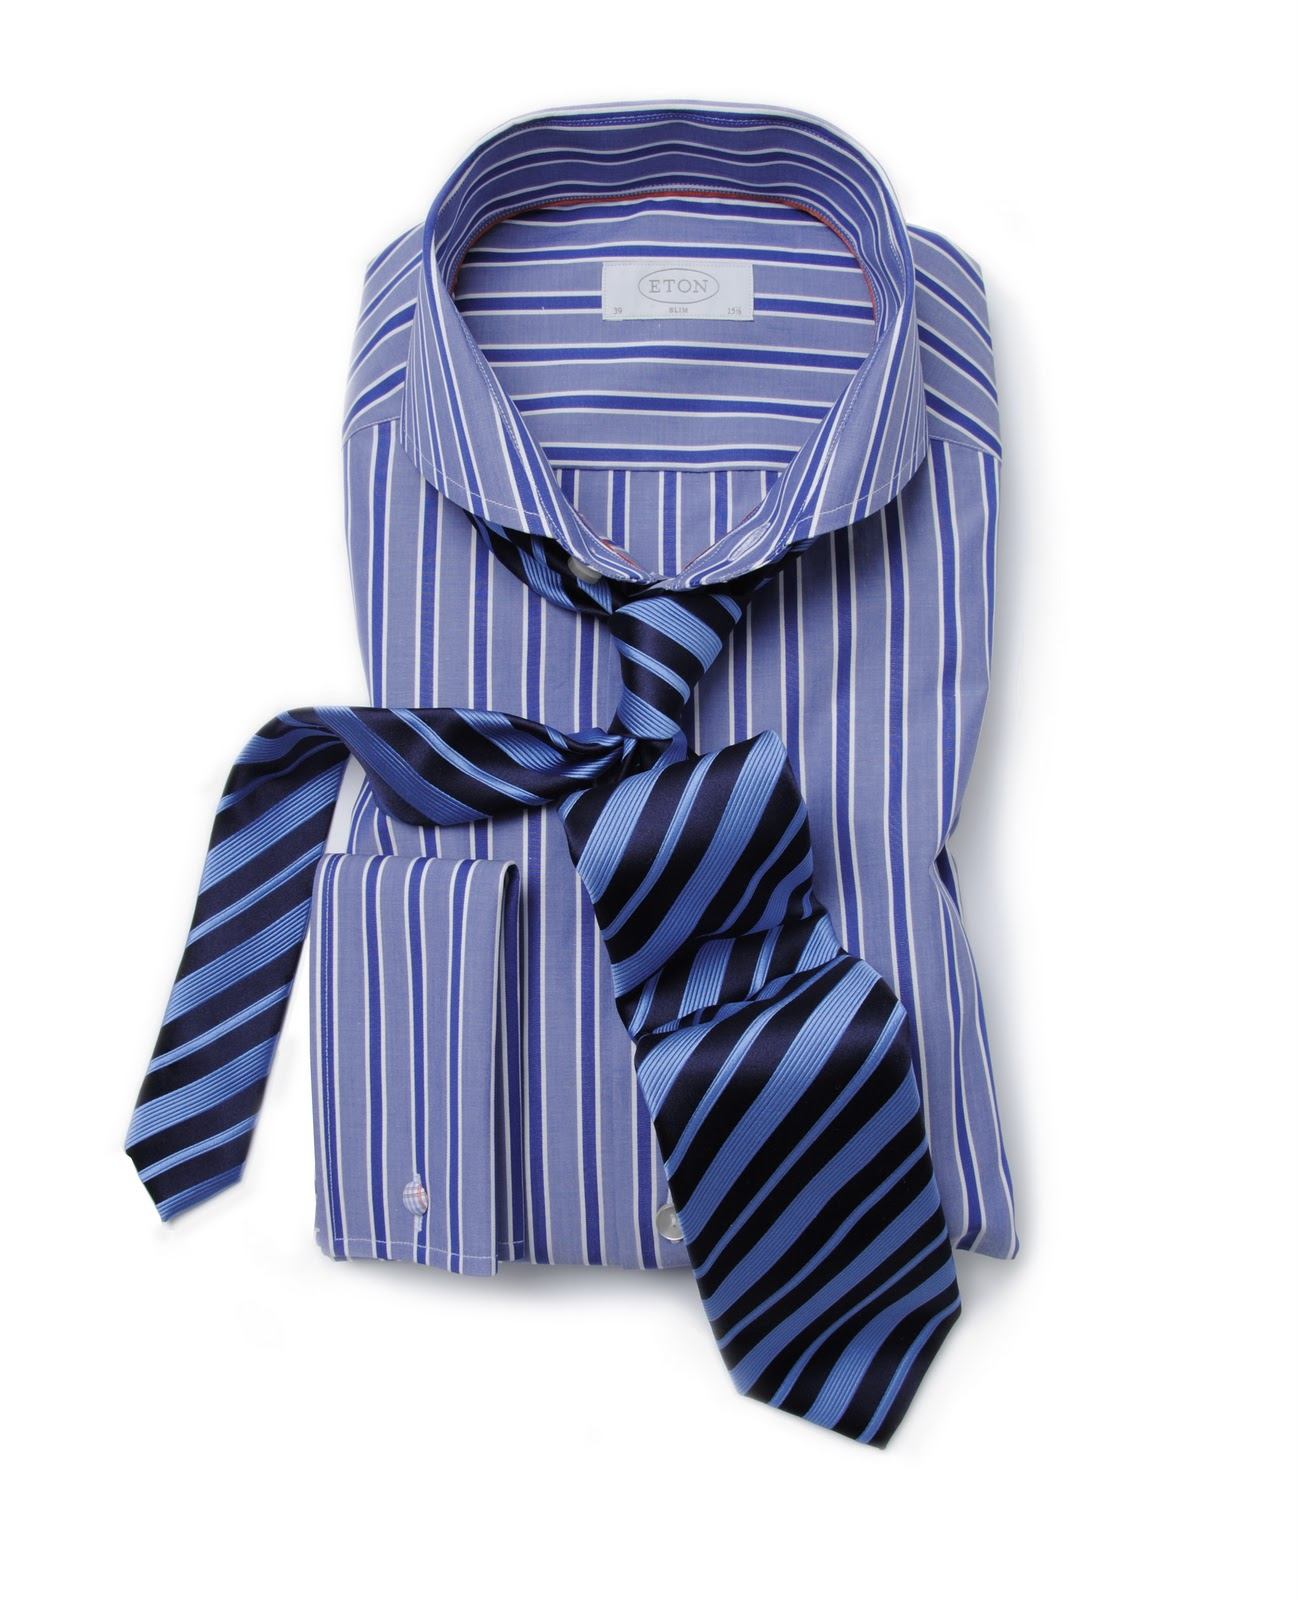 Men 39 s styling shirt and tie the classic look for Striped shirt with tie